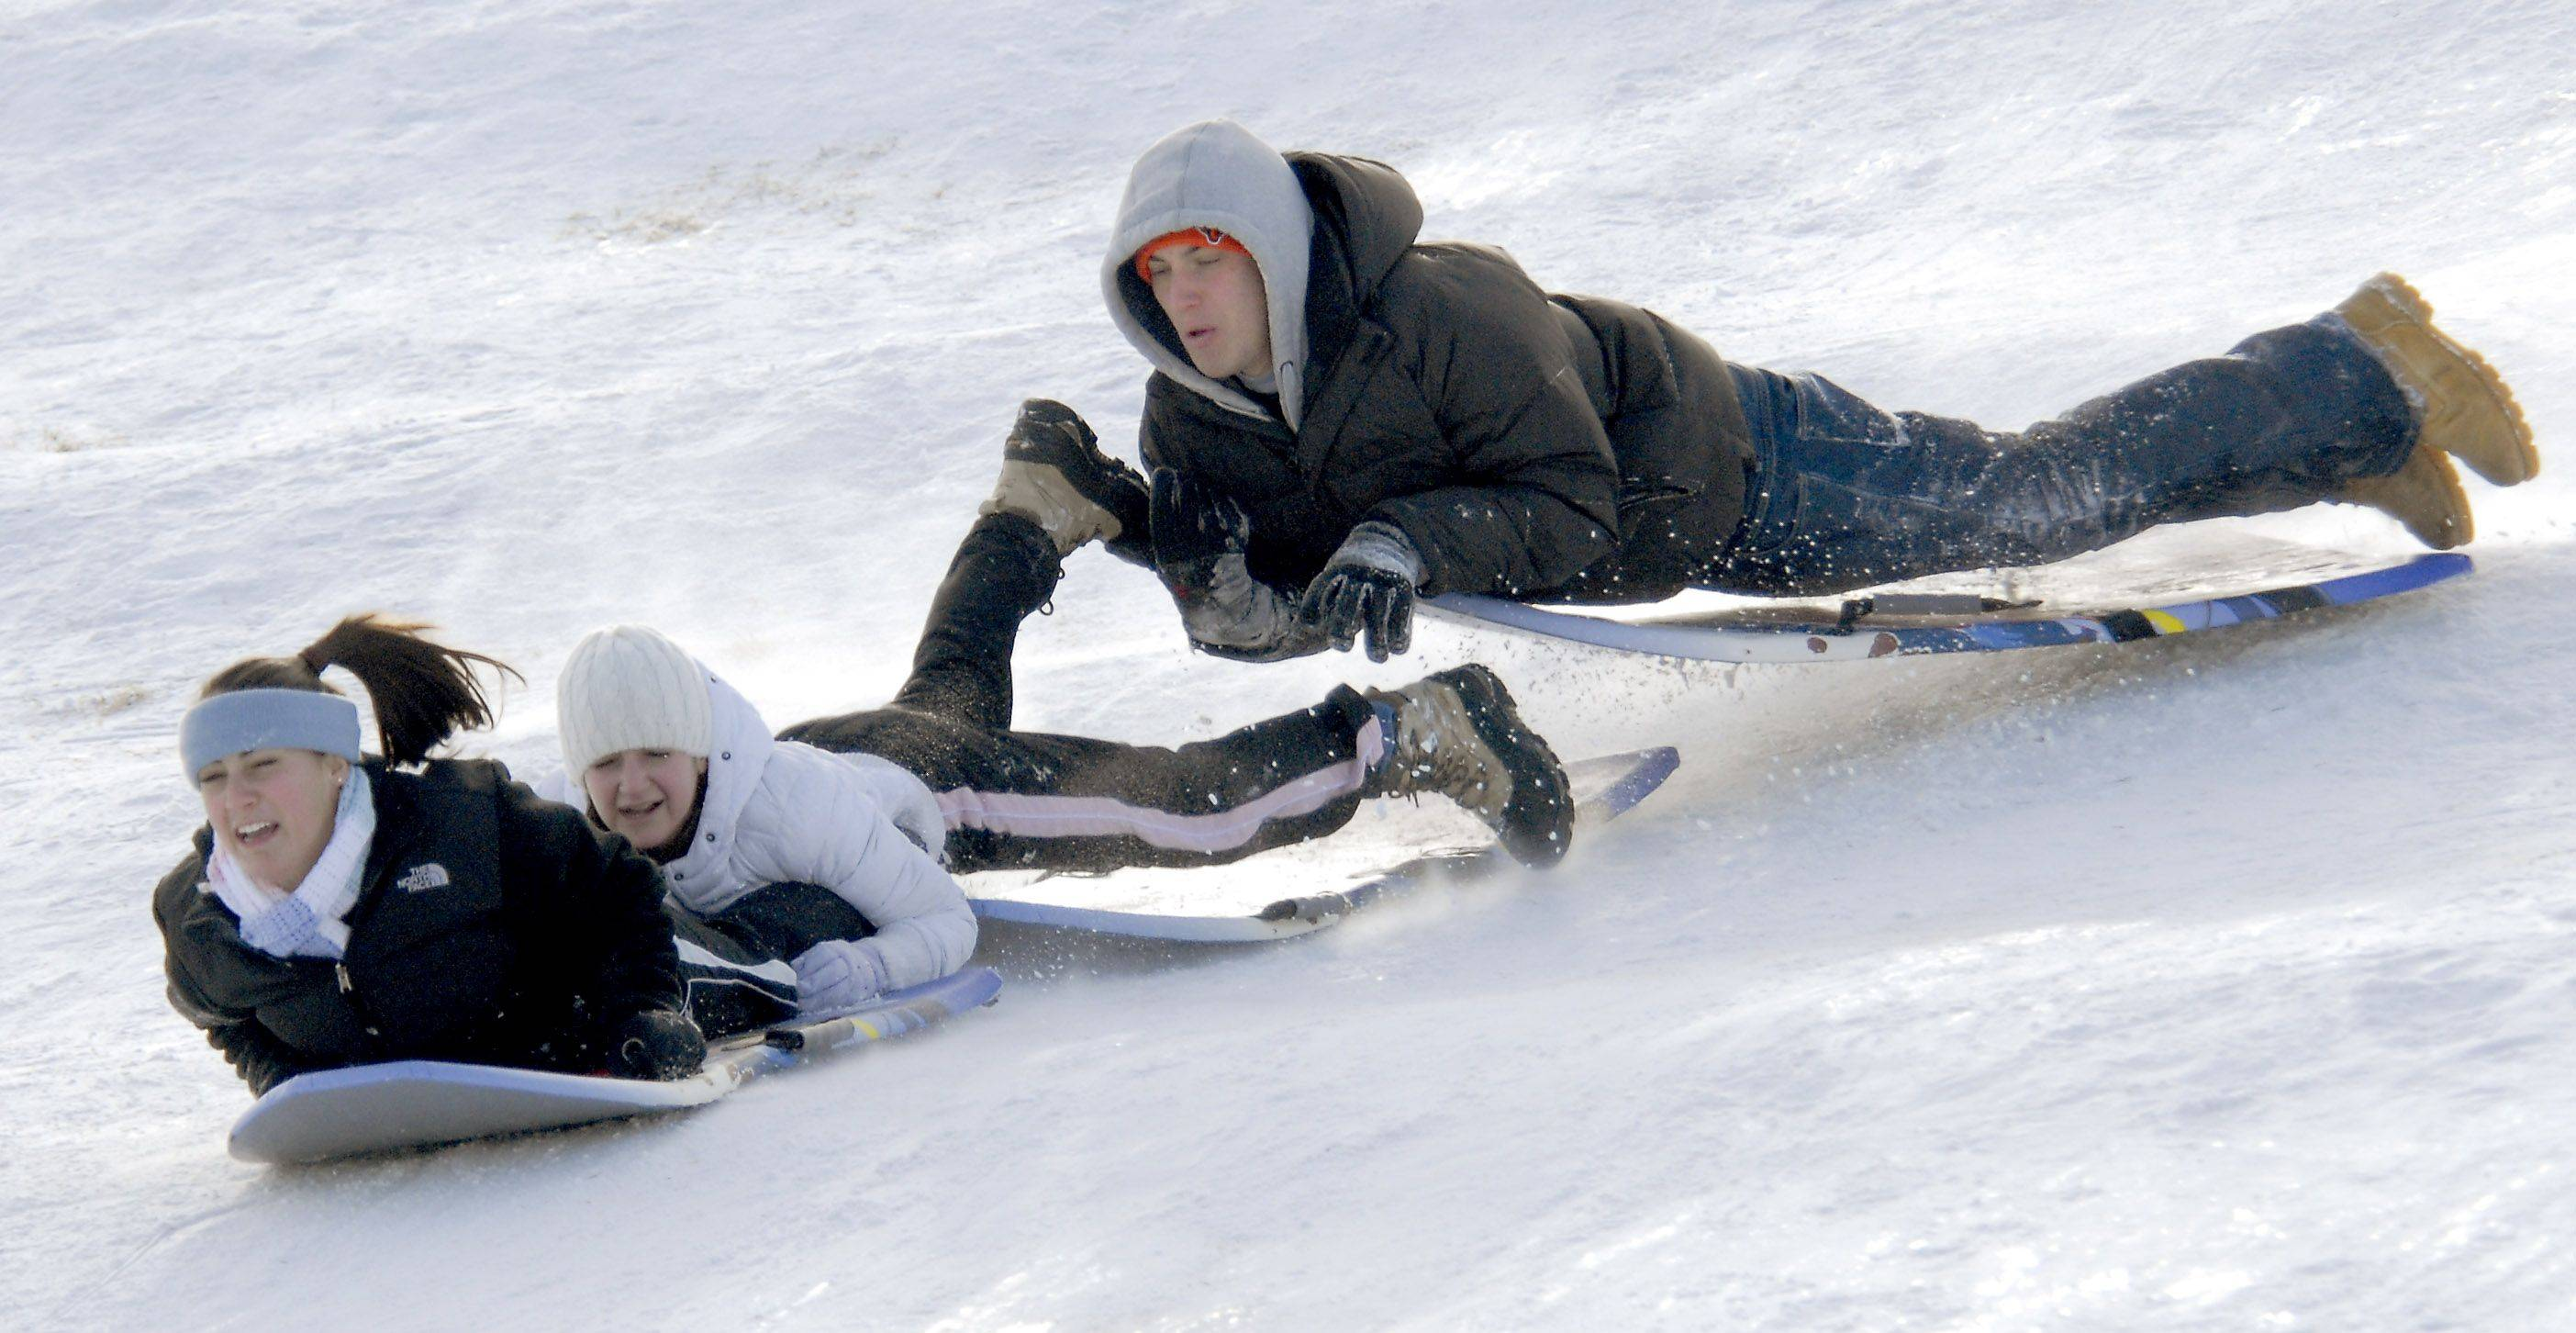 Janelle Schneider, from left, Jenna Schneider and Branden Ladewig, all of Rolling Meadows, catch some air on the moguls at the sled hill in Sunset Park Monday afternoon.